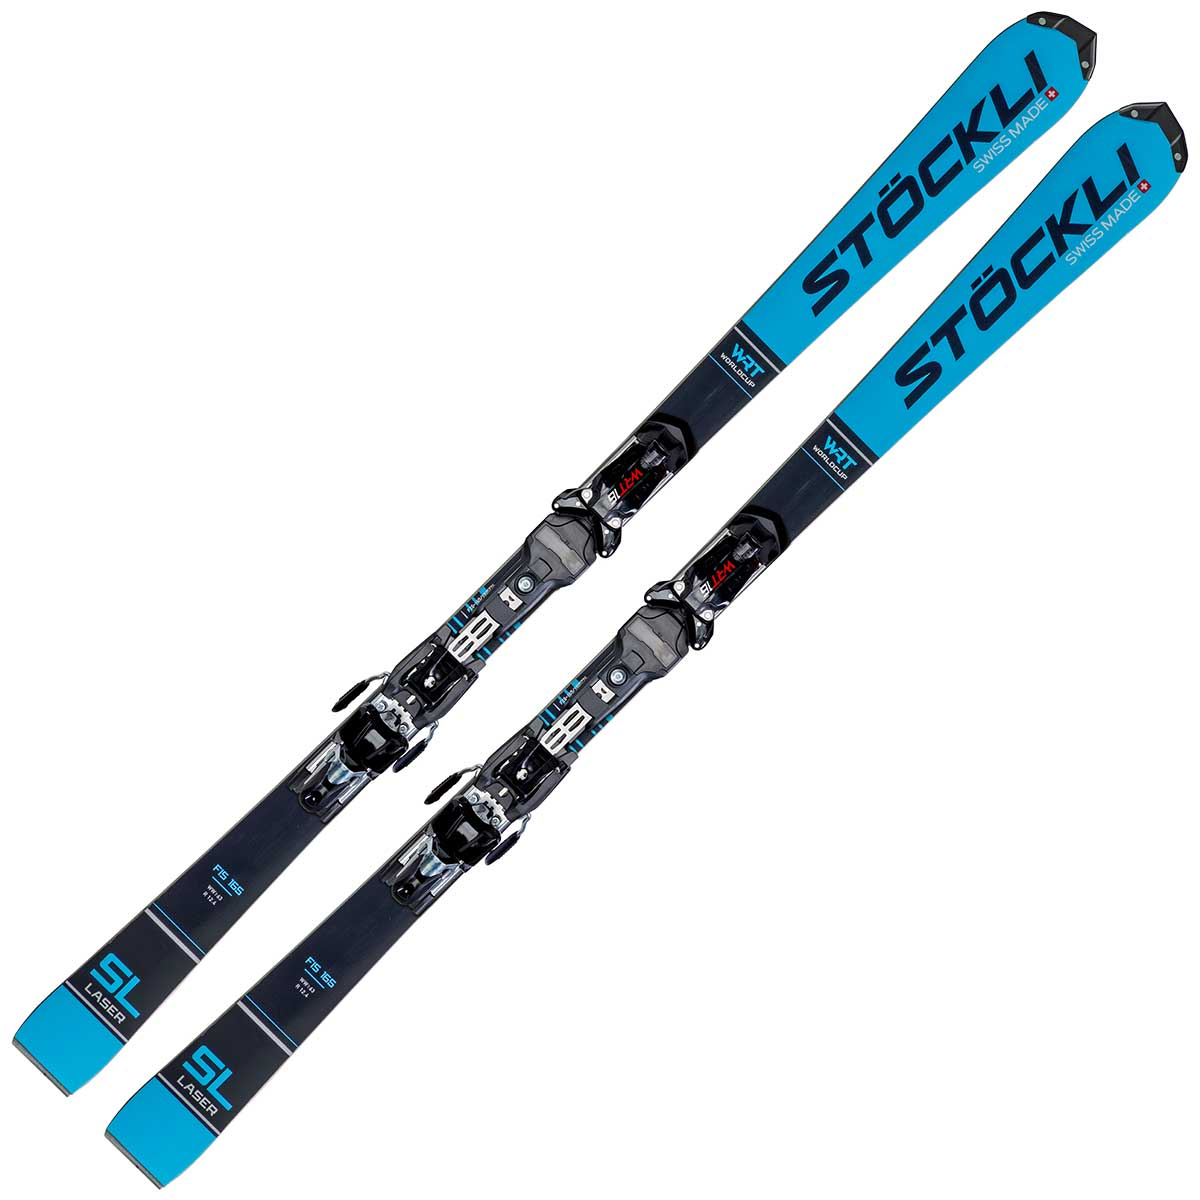 Stockli Laser SL FIS system men's ski in blue